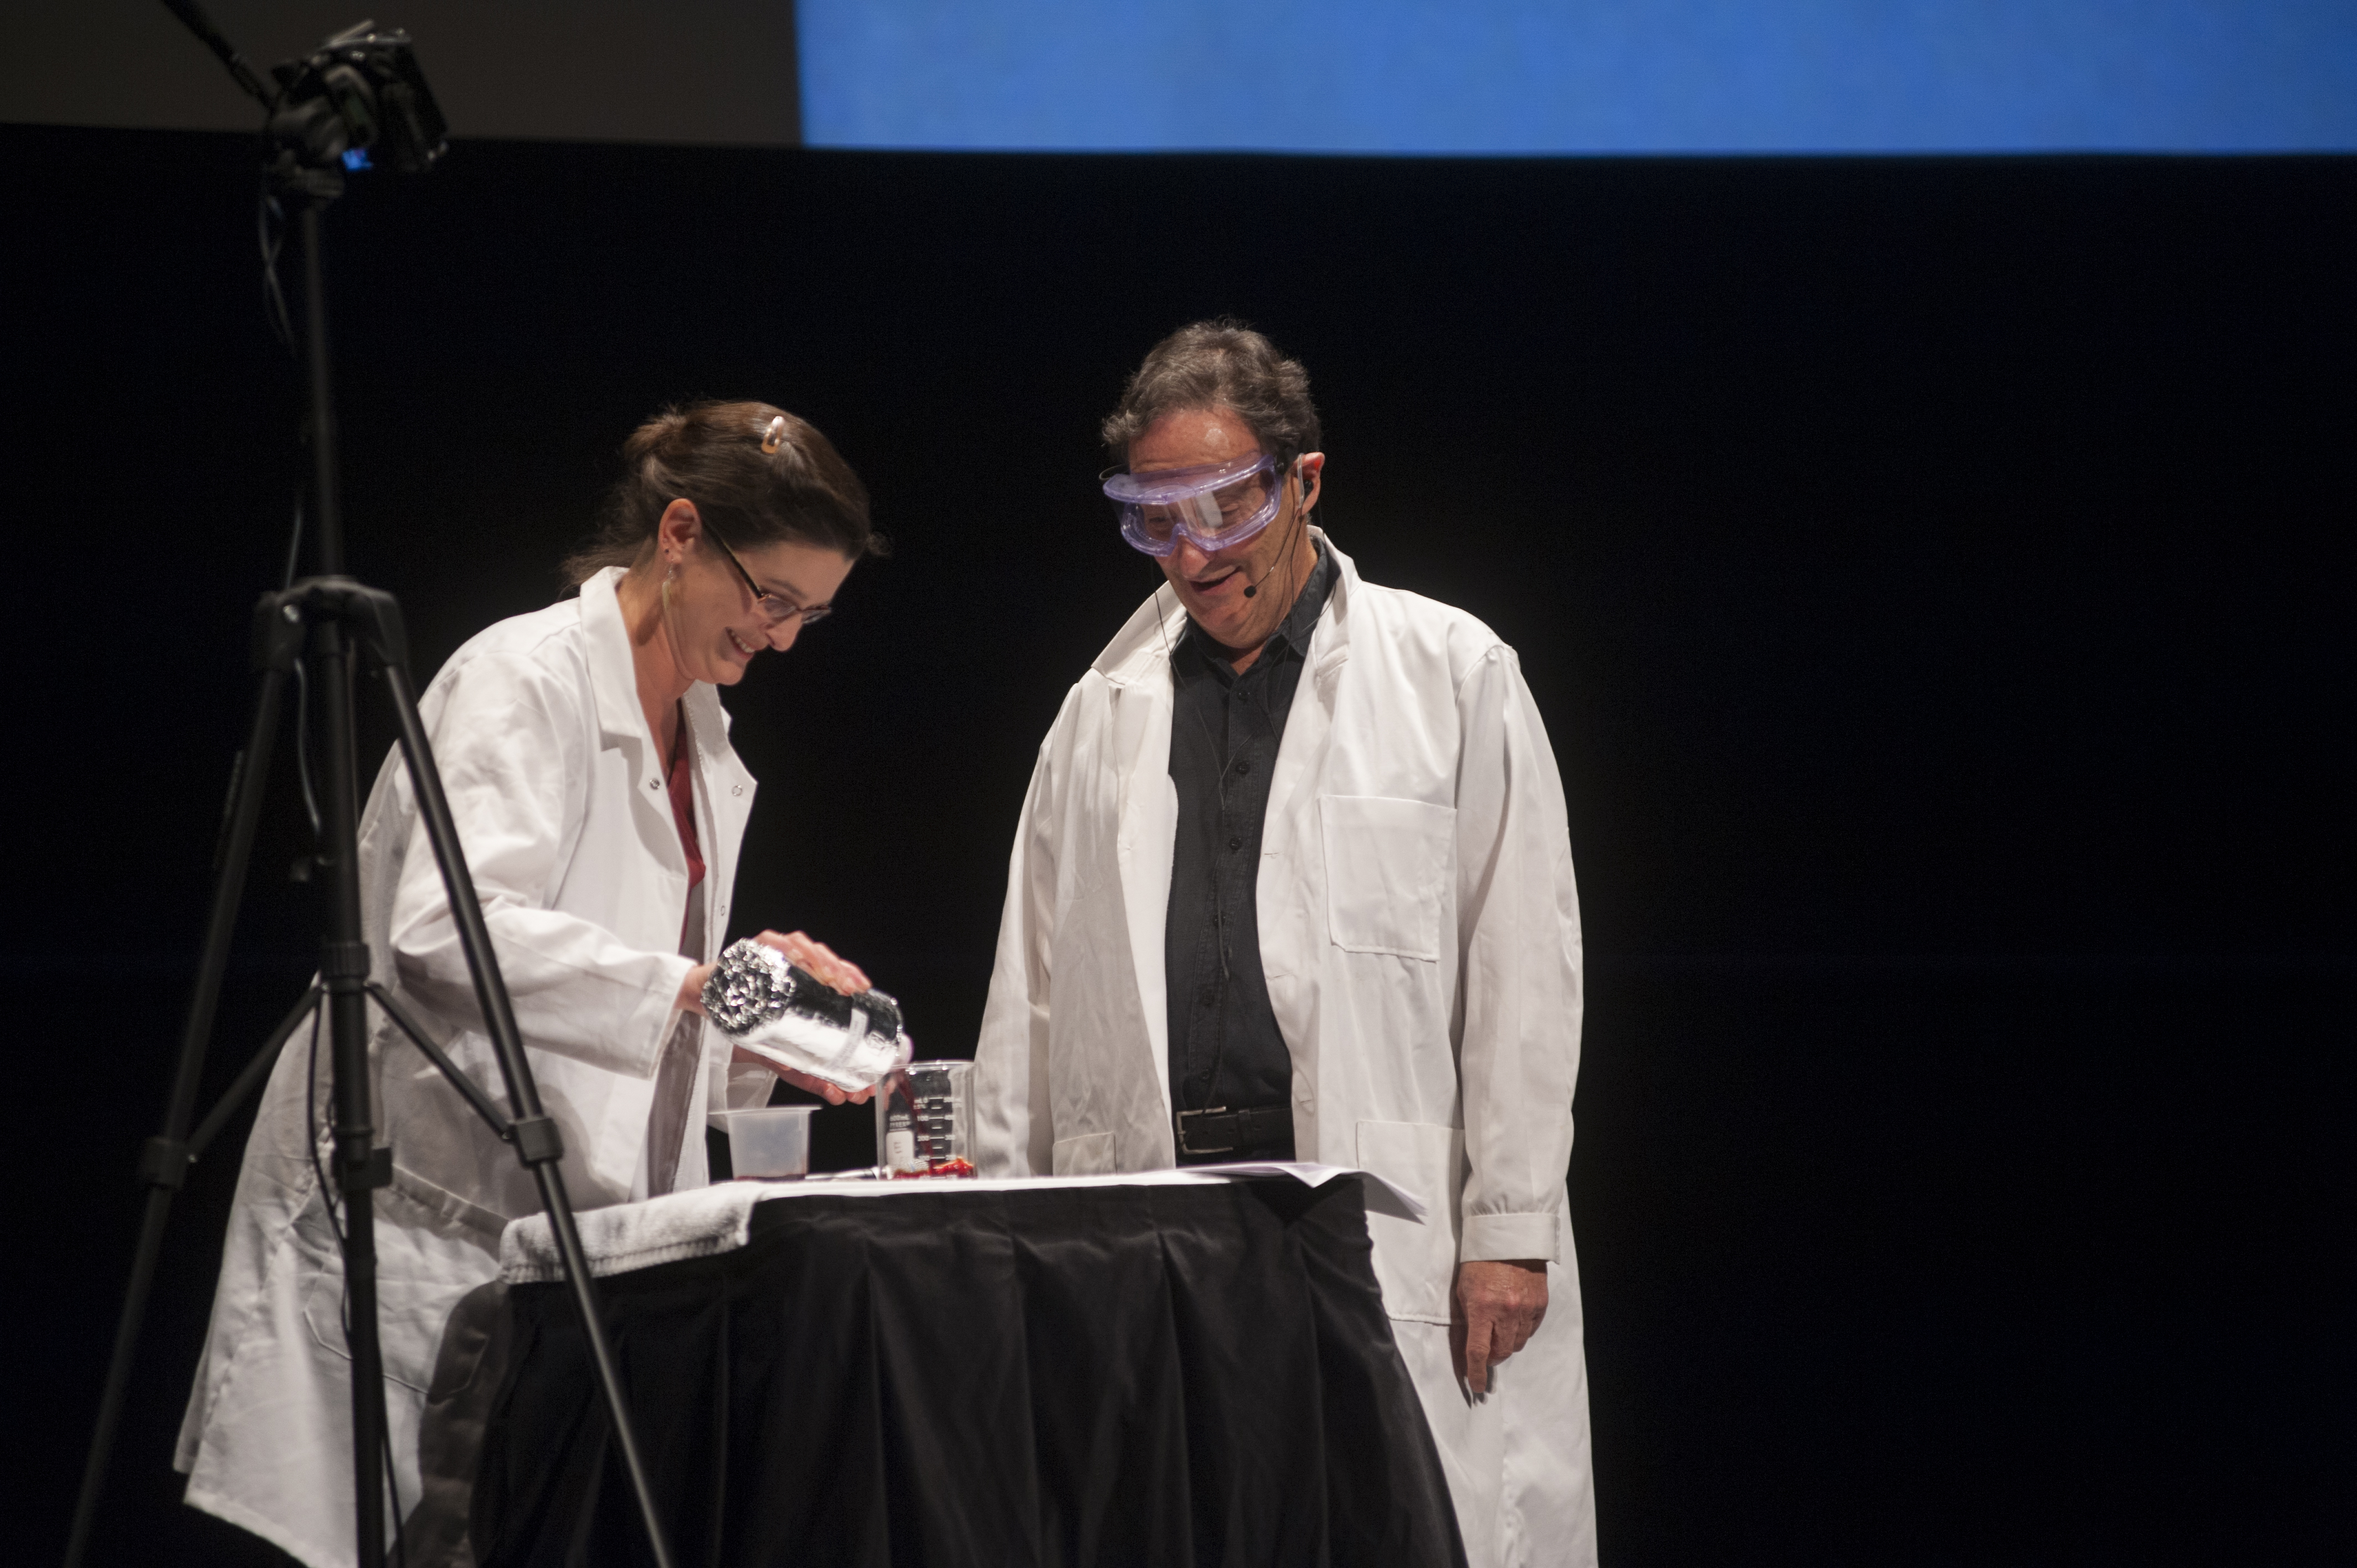 Ira and Dr. Tessa Hill experiment with ocean acidification on stage at the Mondavi Center, UC Davis, California. Credit: Adeline Xu/UC Davis